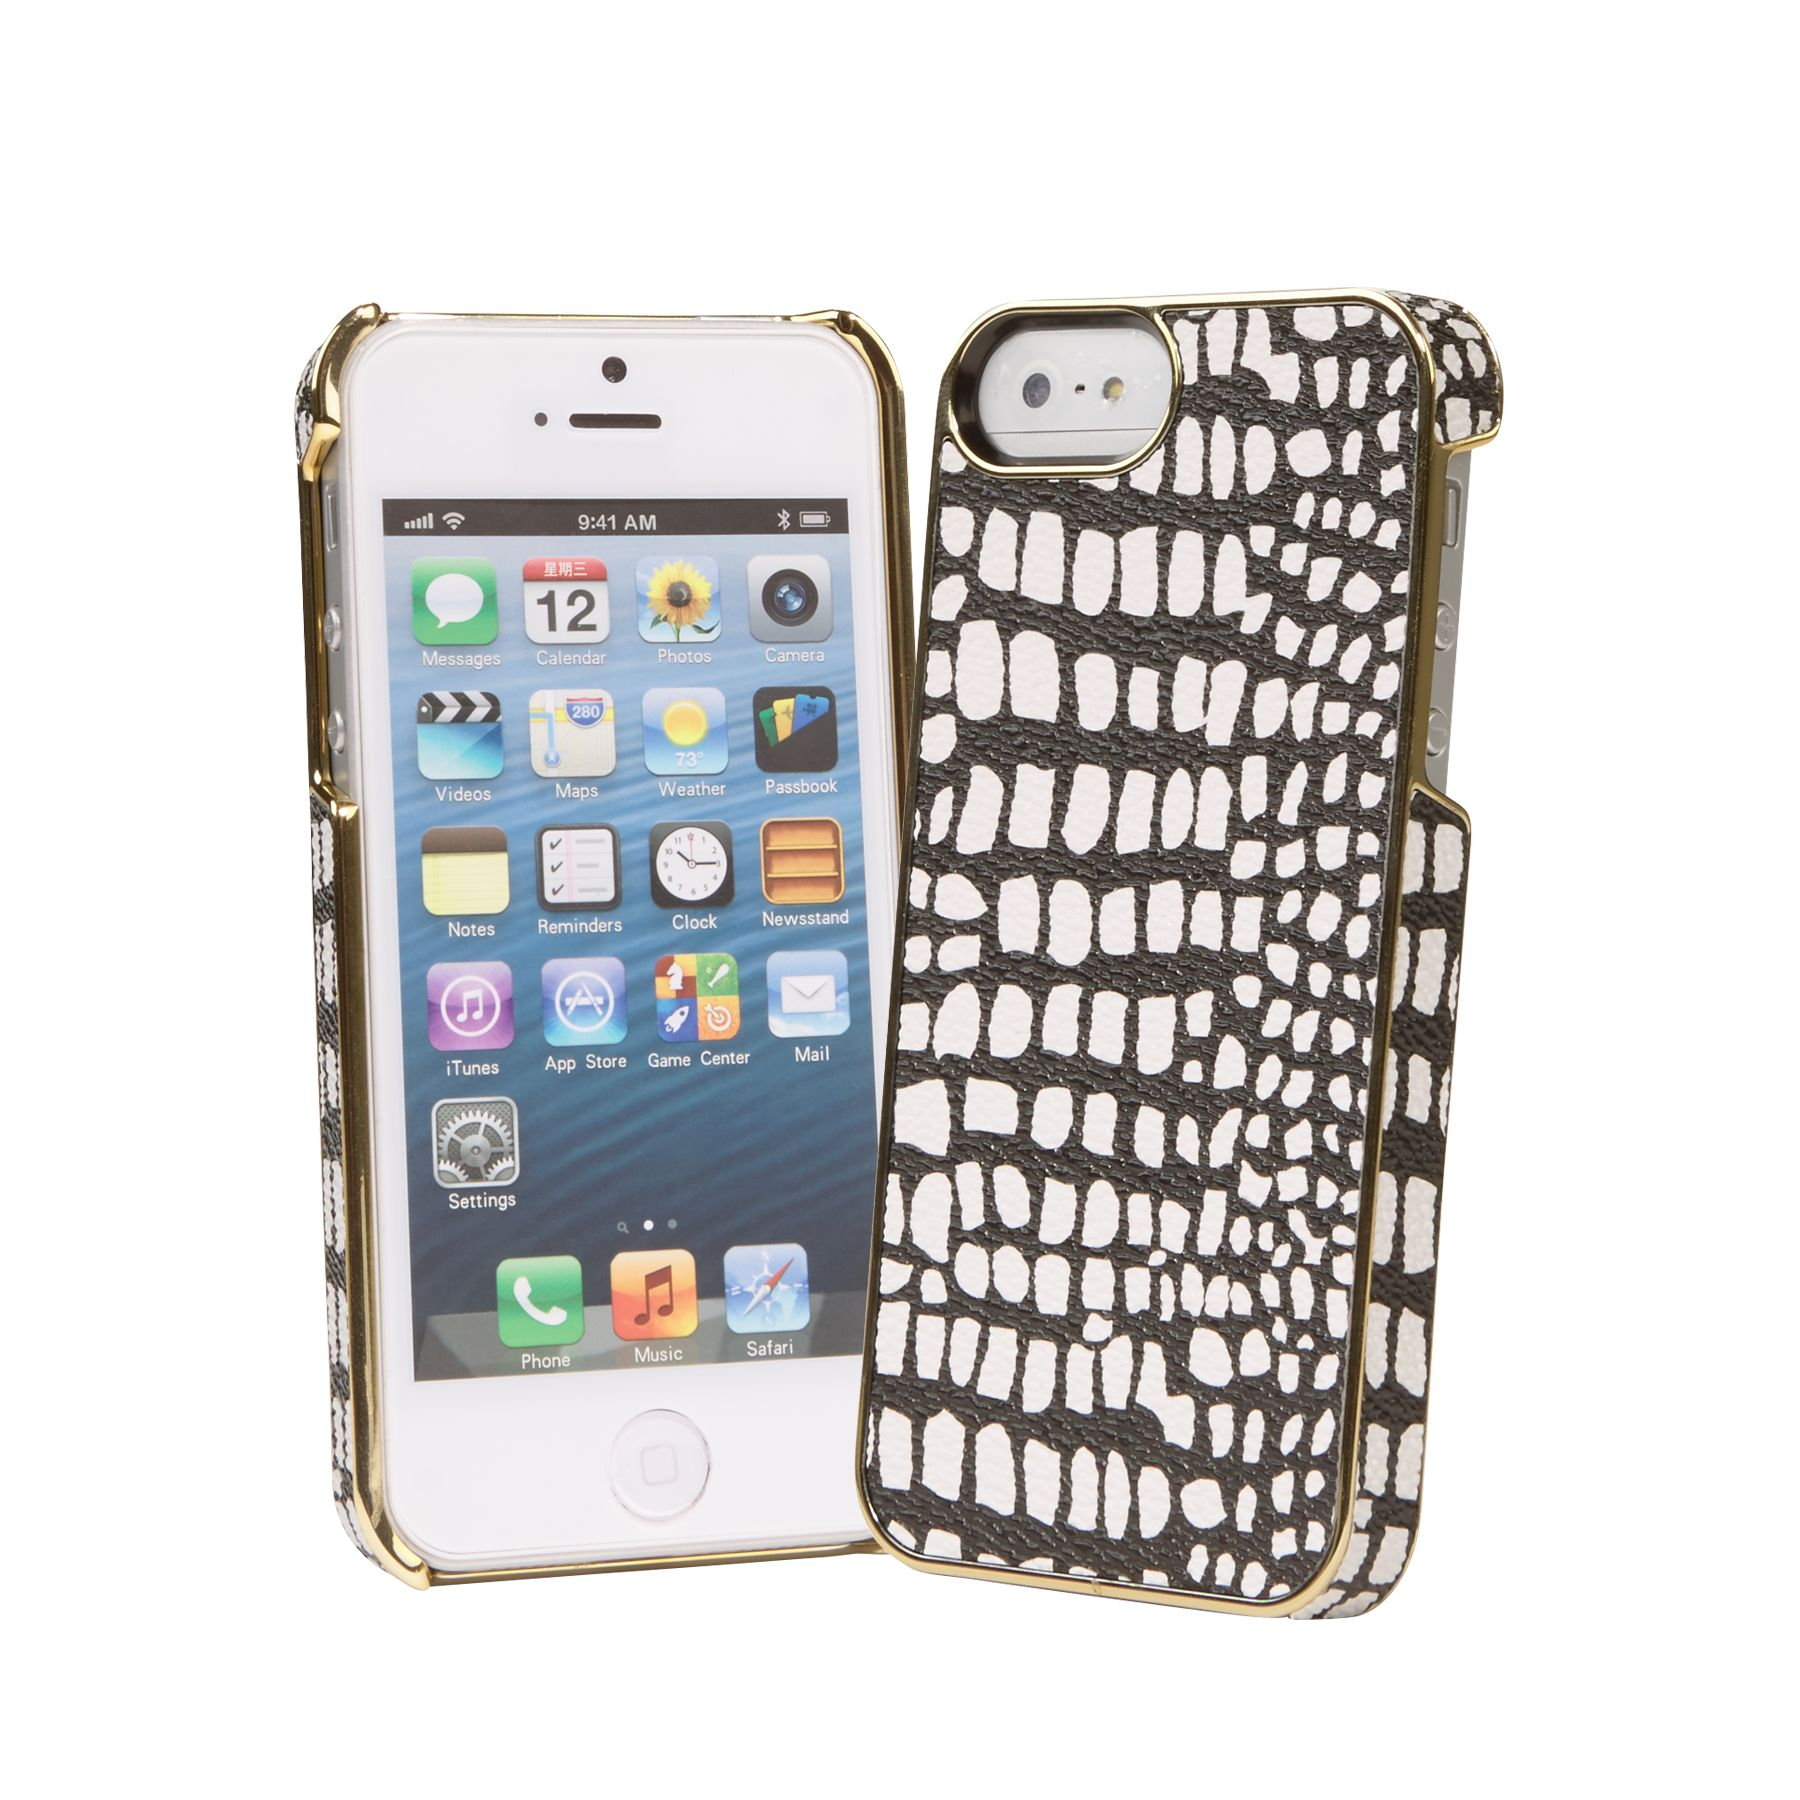 vera bradley iphone 5 case vera bradley b b snap on phone for iphone 5 ebay 9066